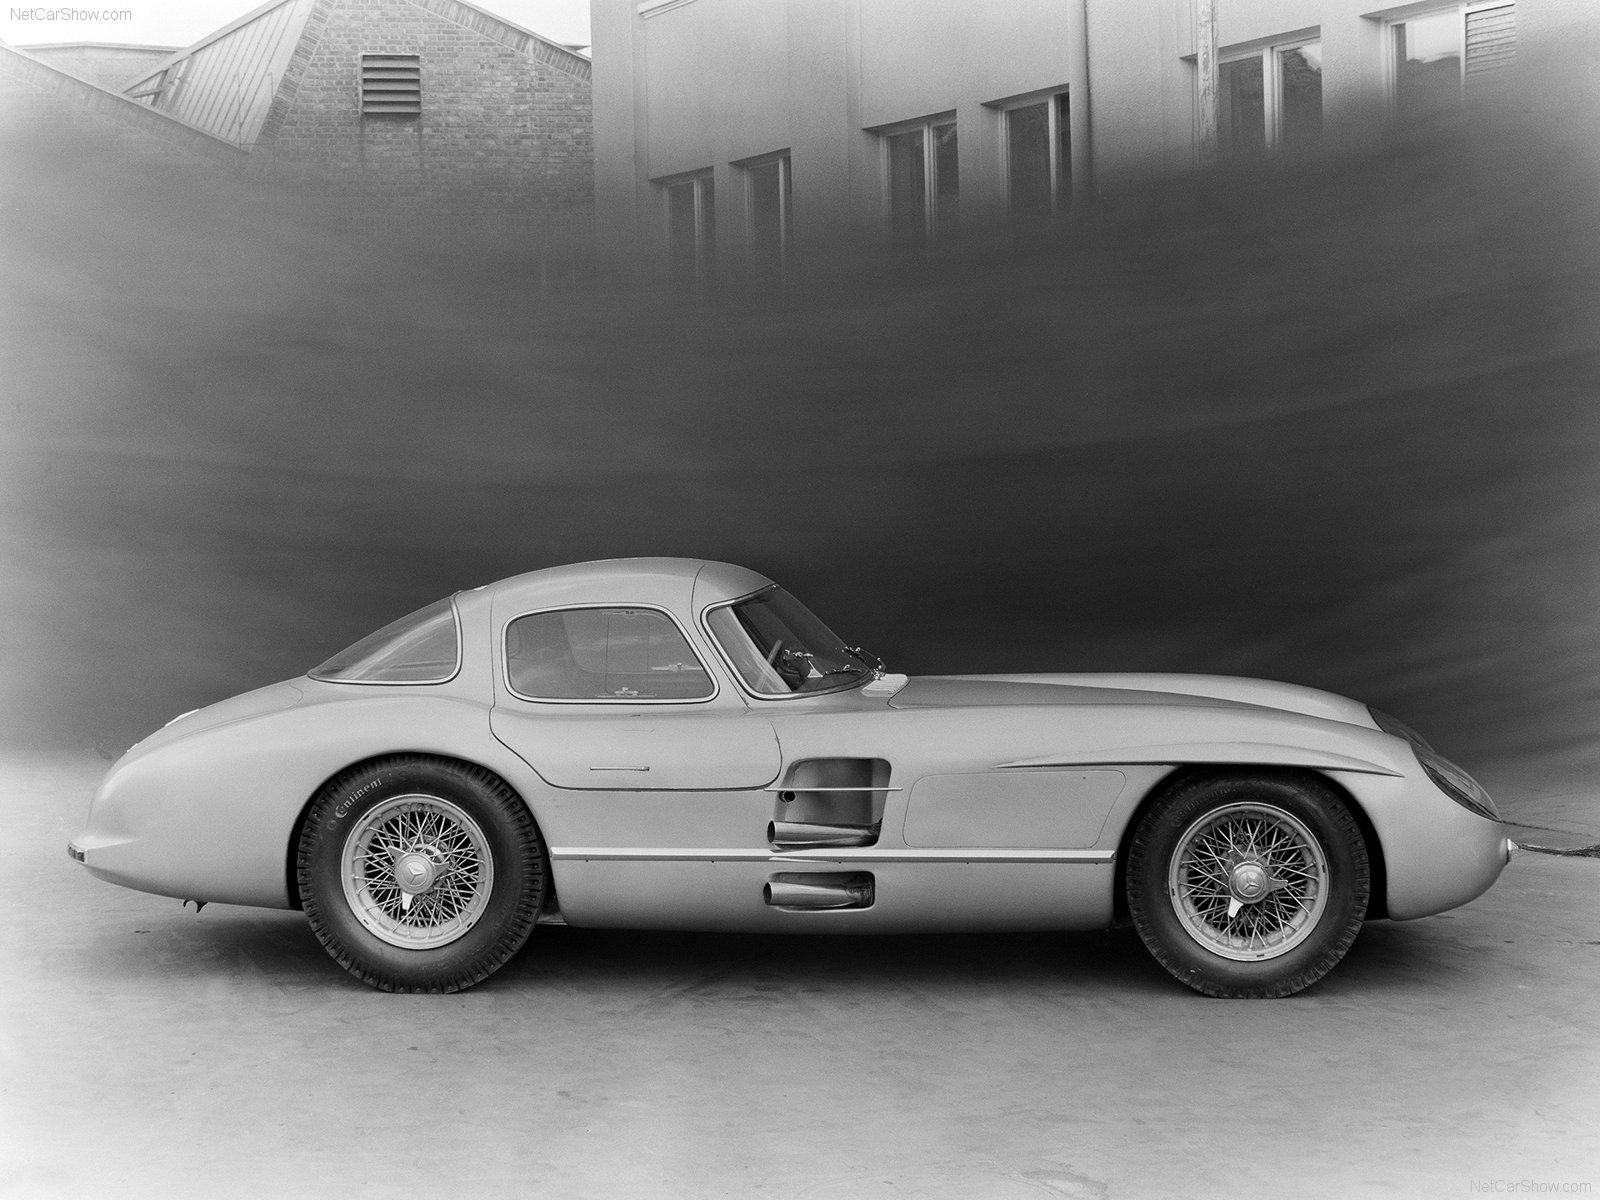 Mercedes benz 300 slr photos photogallery with 64 pics for Mercedes benz 300 slr